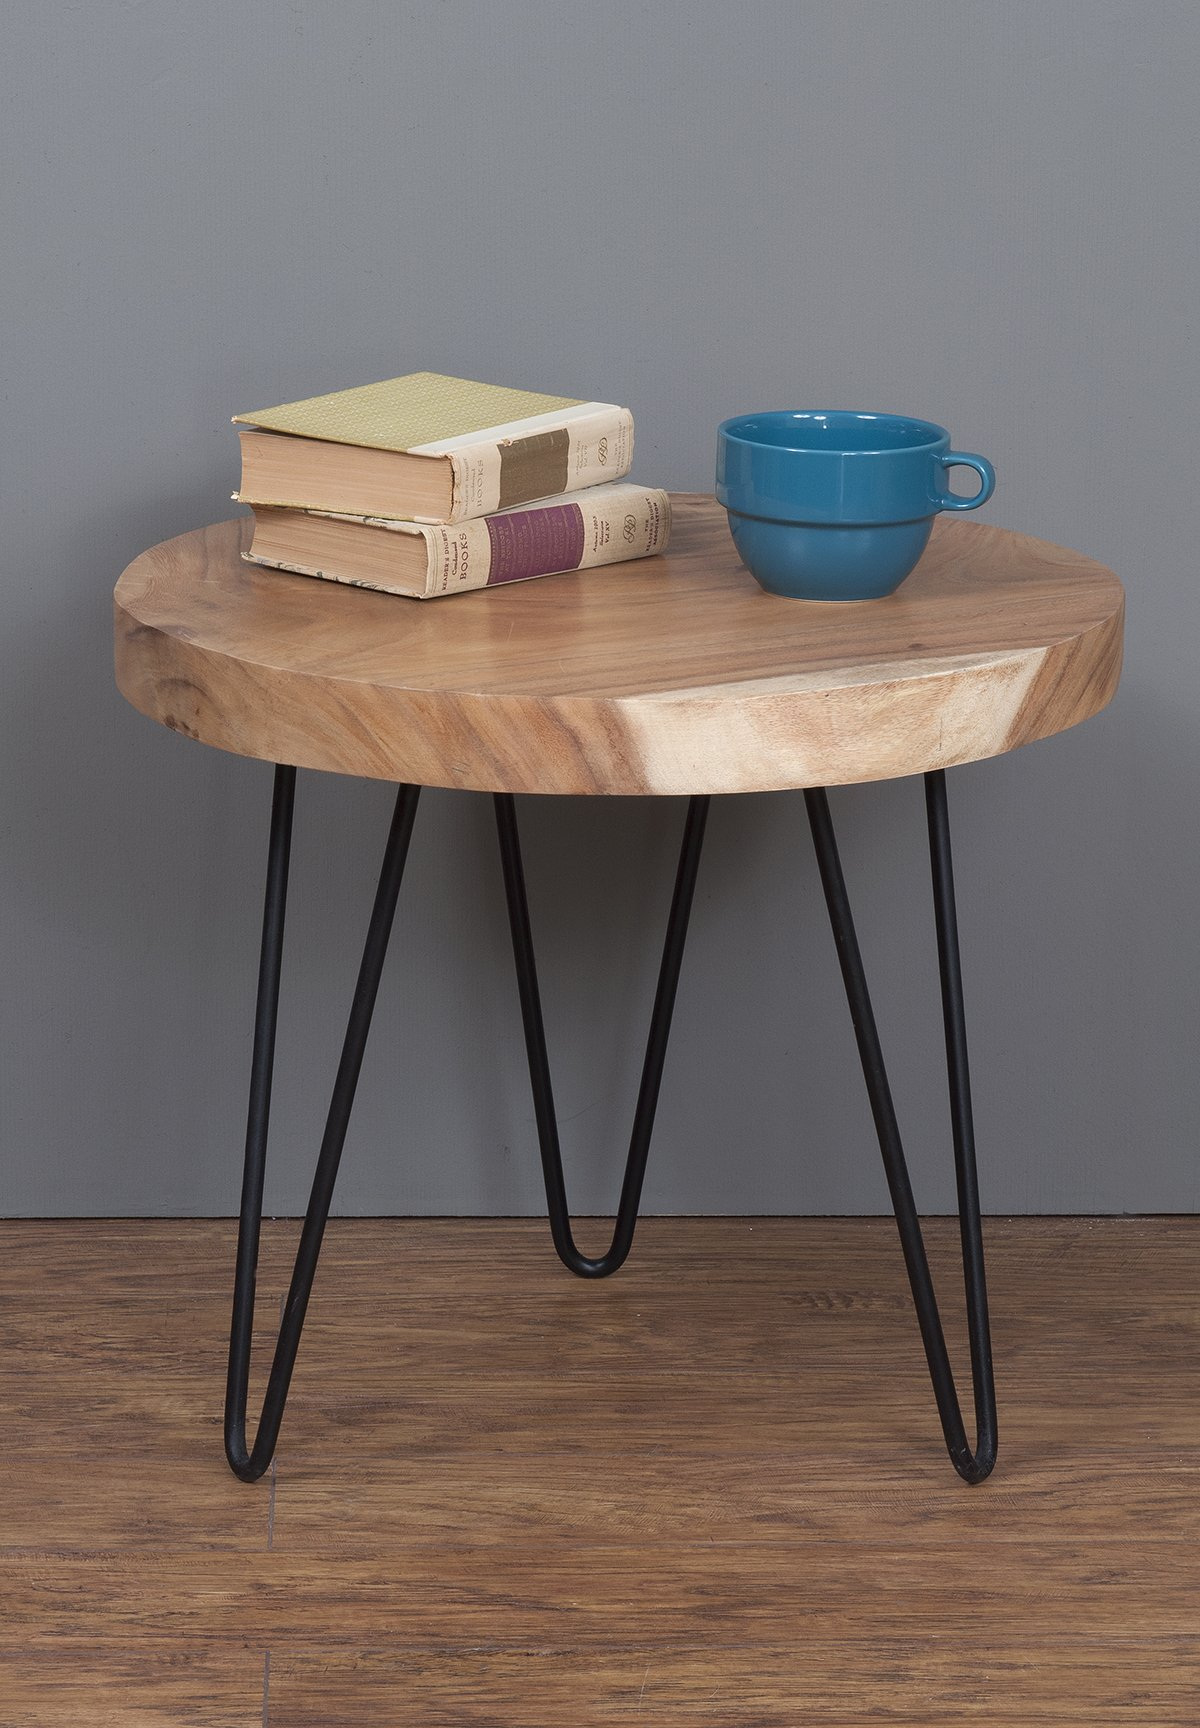 East at Main Phillip Brown Teakwood Accent Table, (22x22x19) - The dimensions of this product: 22x22x19 inches. Carefully hand-crafted using natural teak Comes with a 1 year limited manufacturer's warranty - living-room-furniture, living-room, end-tables - 81sDqaRVaPL -